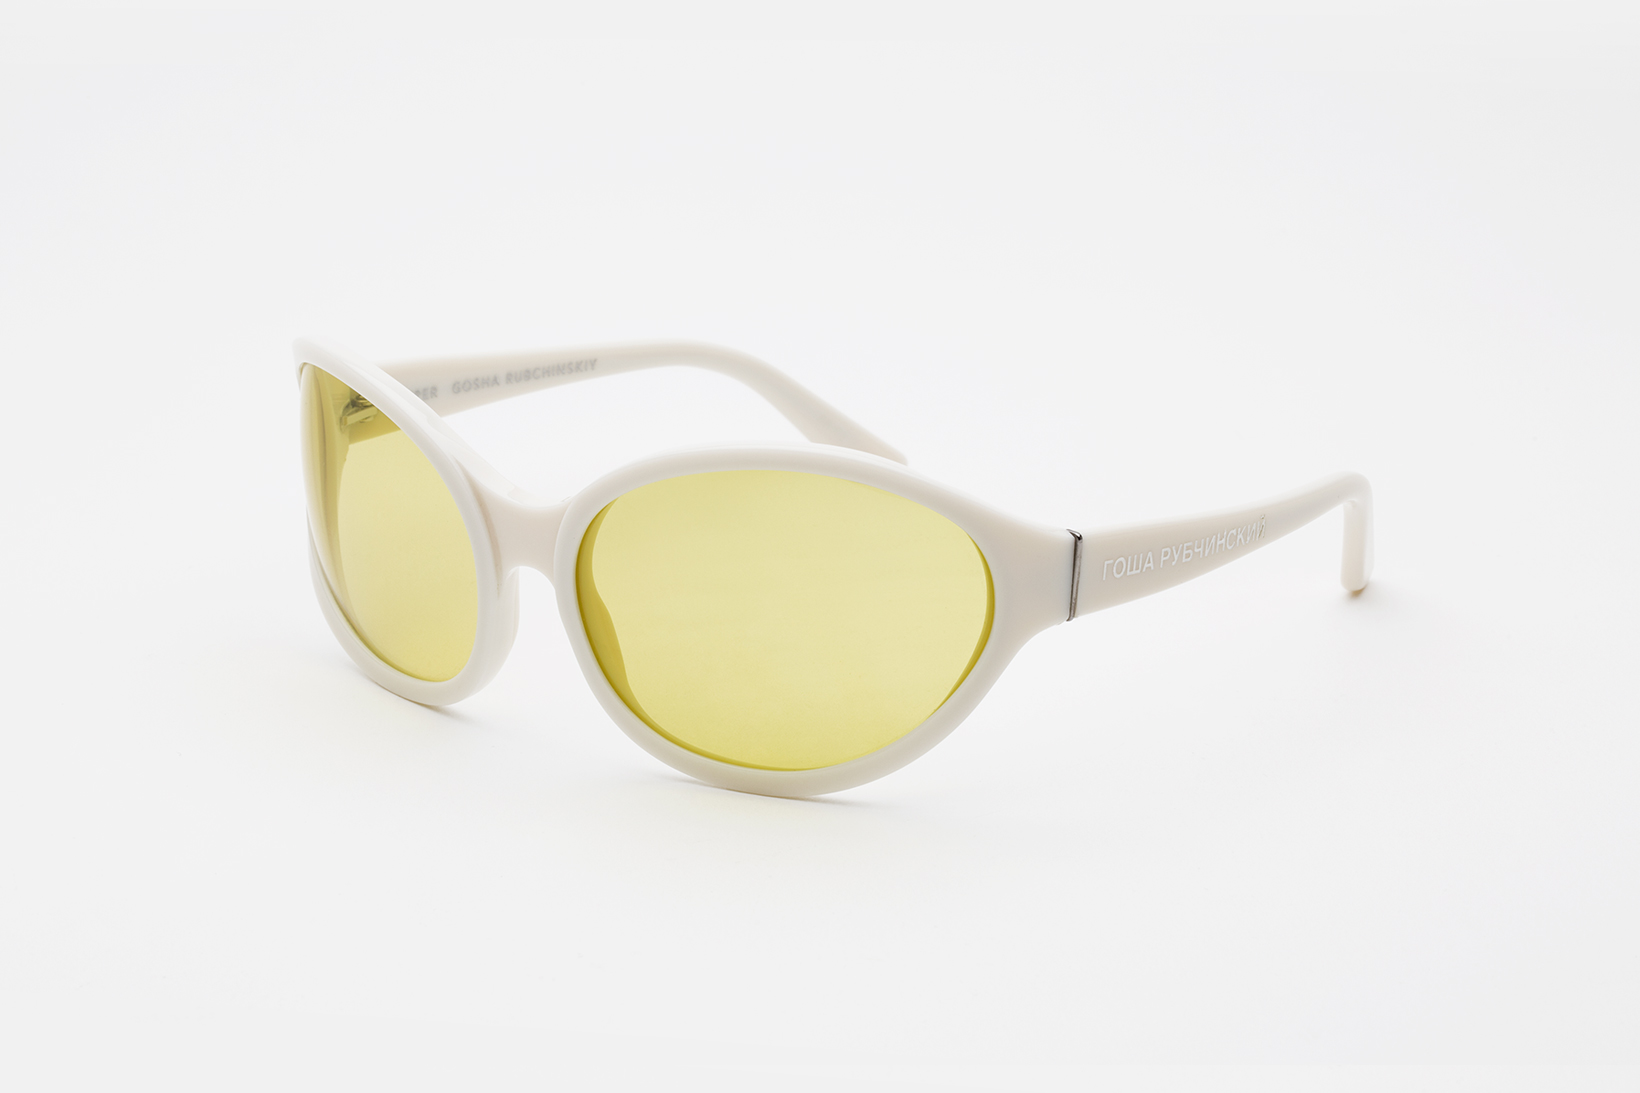 Gosha Rubchinksiy x SUPER by RETROSUPERFUTURE Eyewear Collection - 1844724